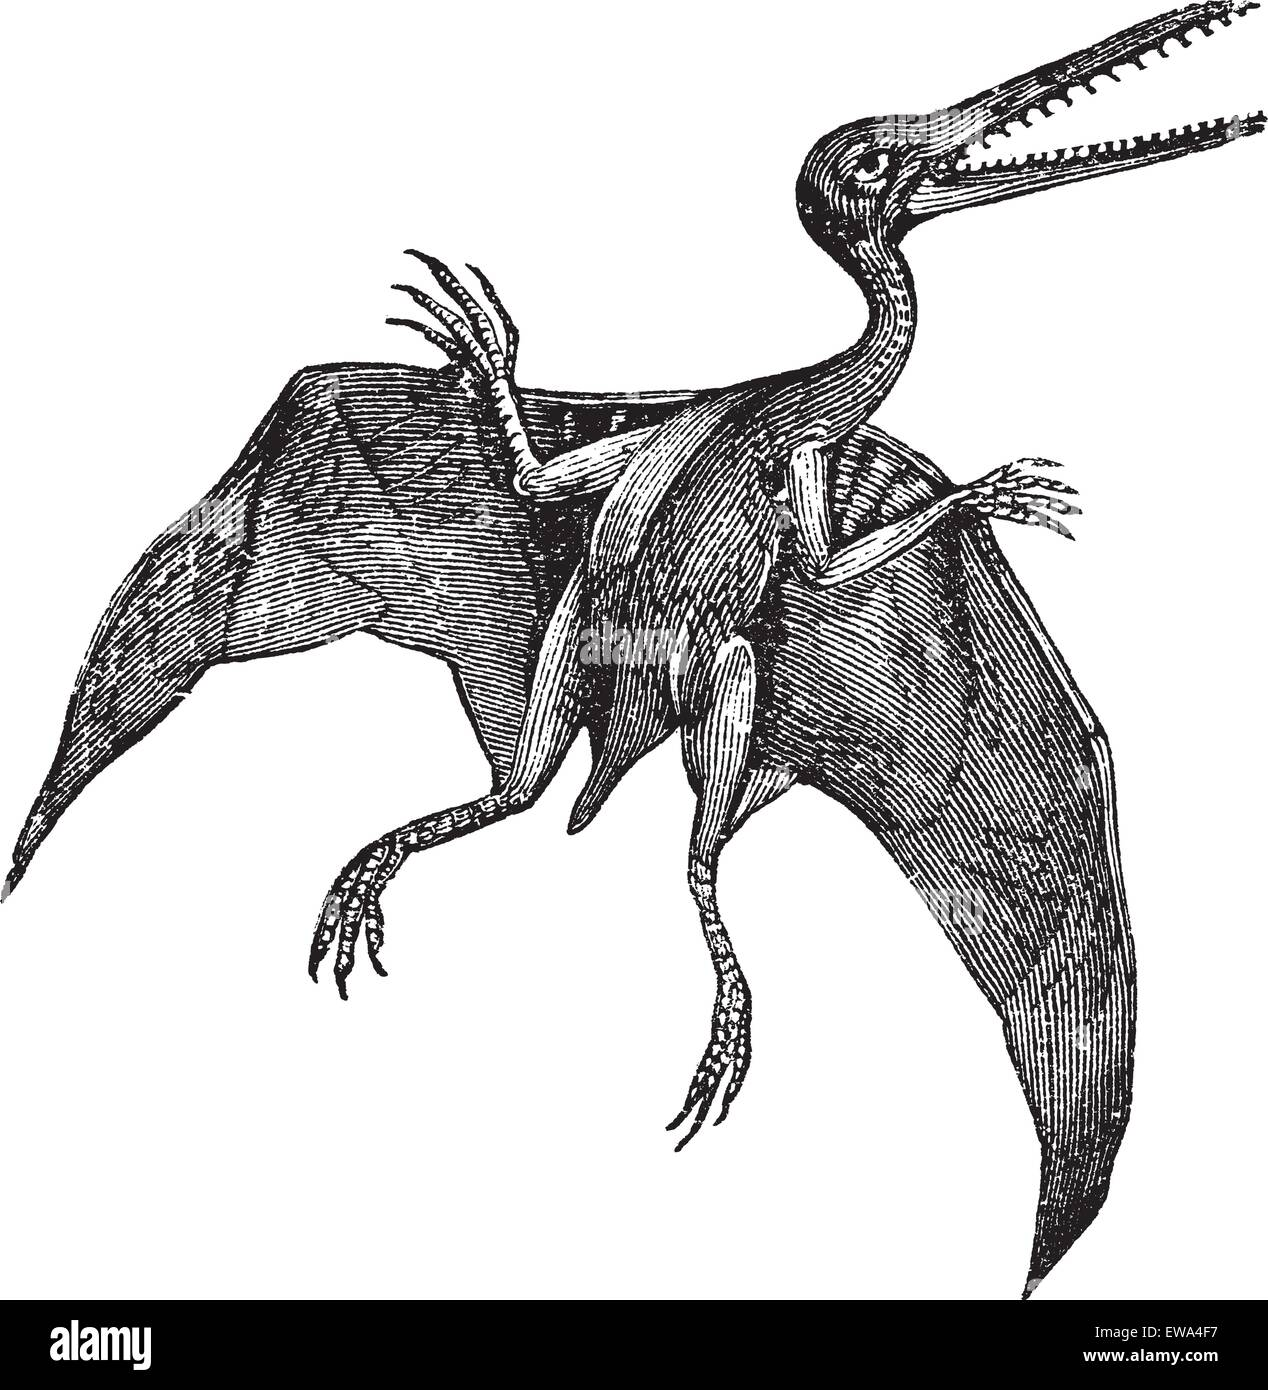 Pterodactylus or Pterodactylus antiquus, vintage engraving. Old engraved illustration of Pterodactylus isolated - Stock Image